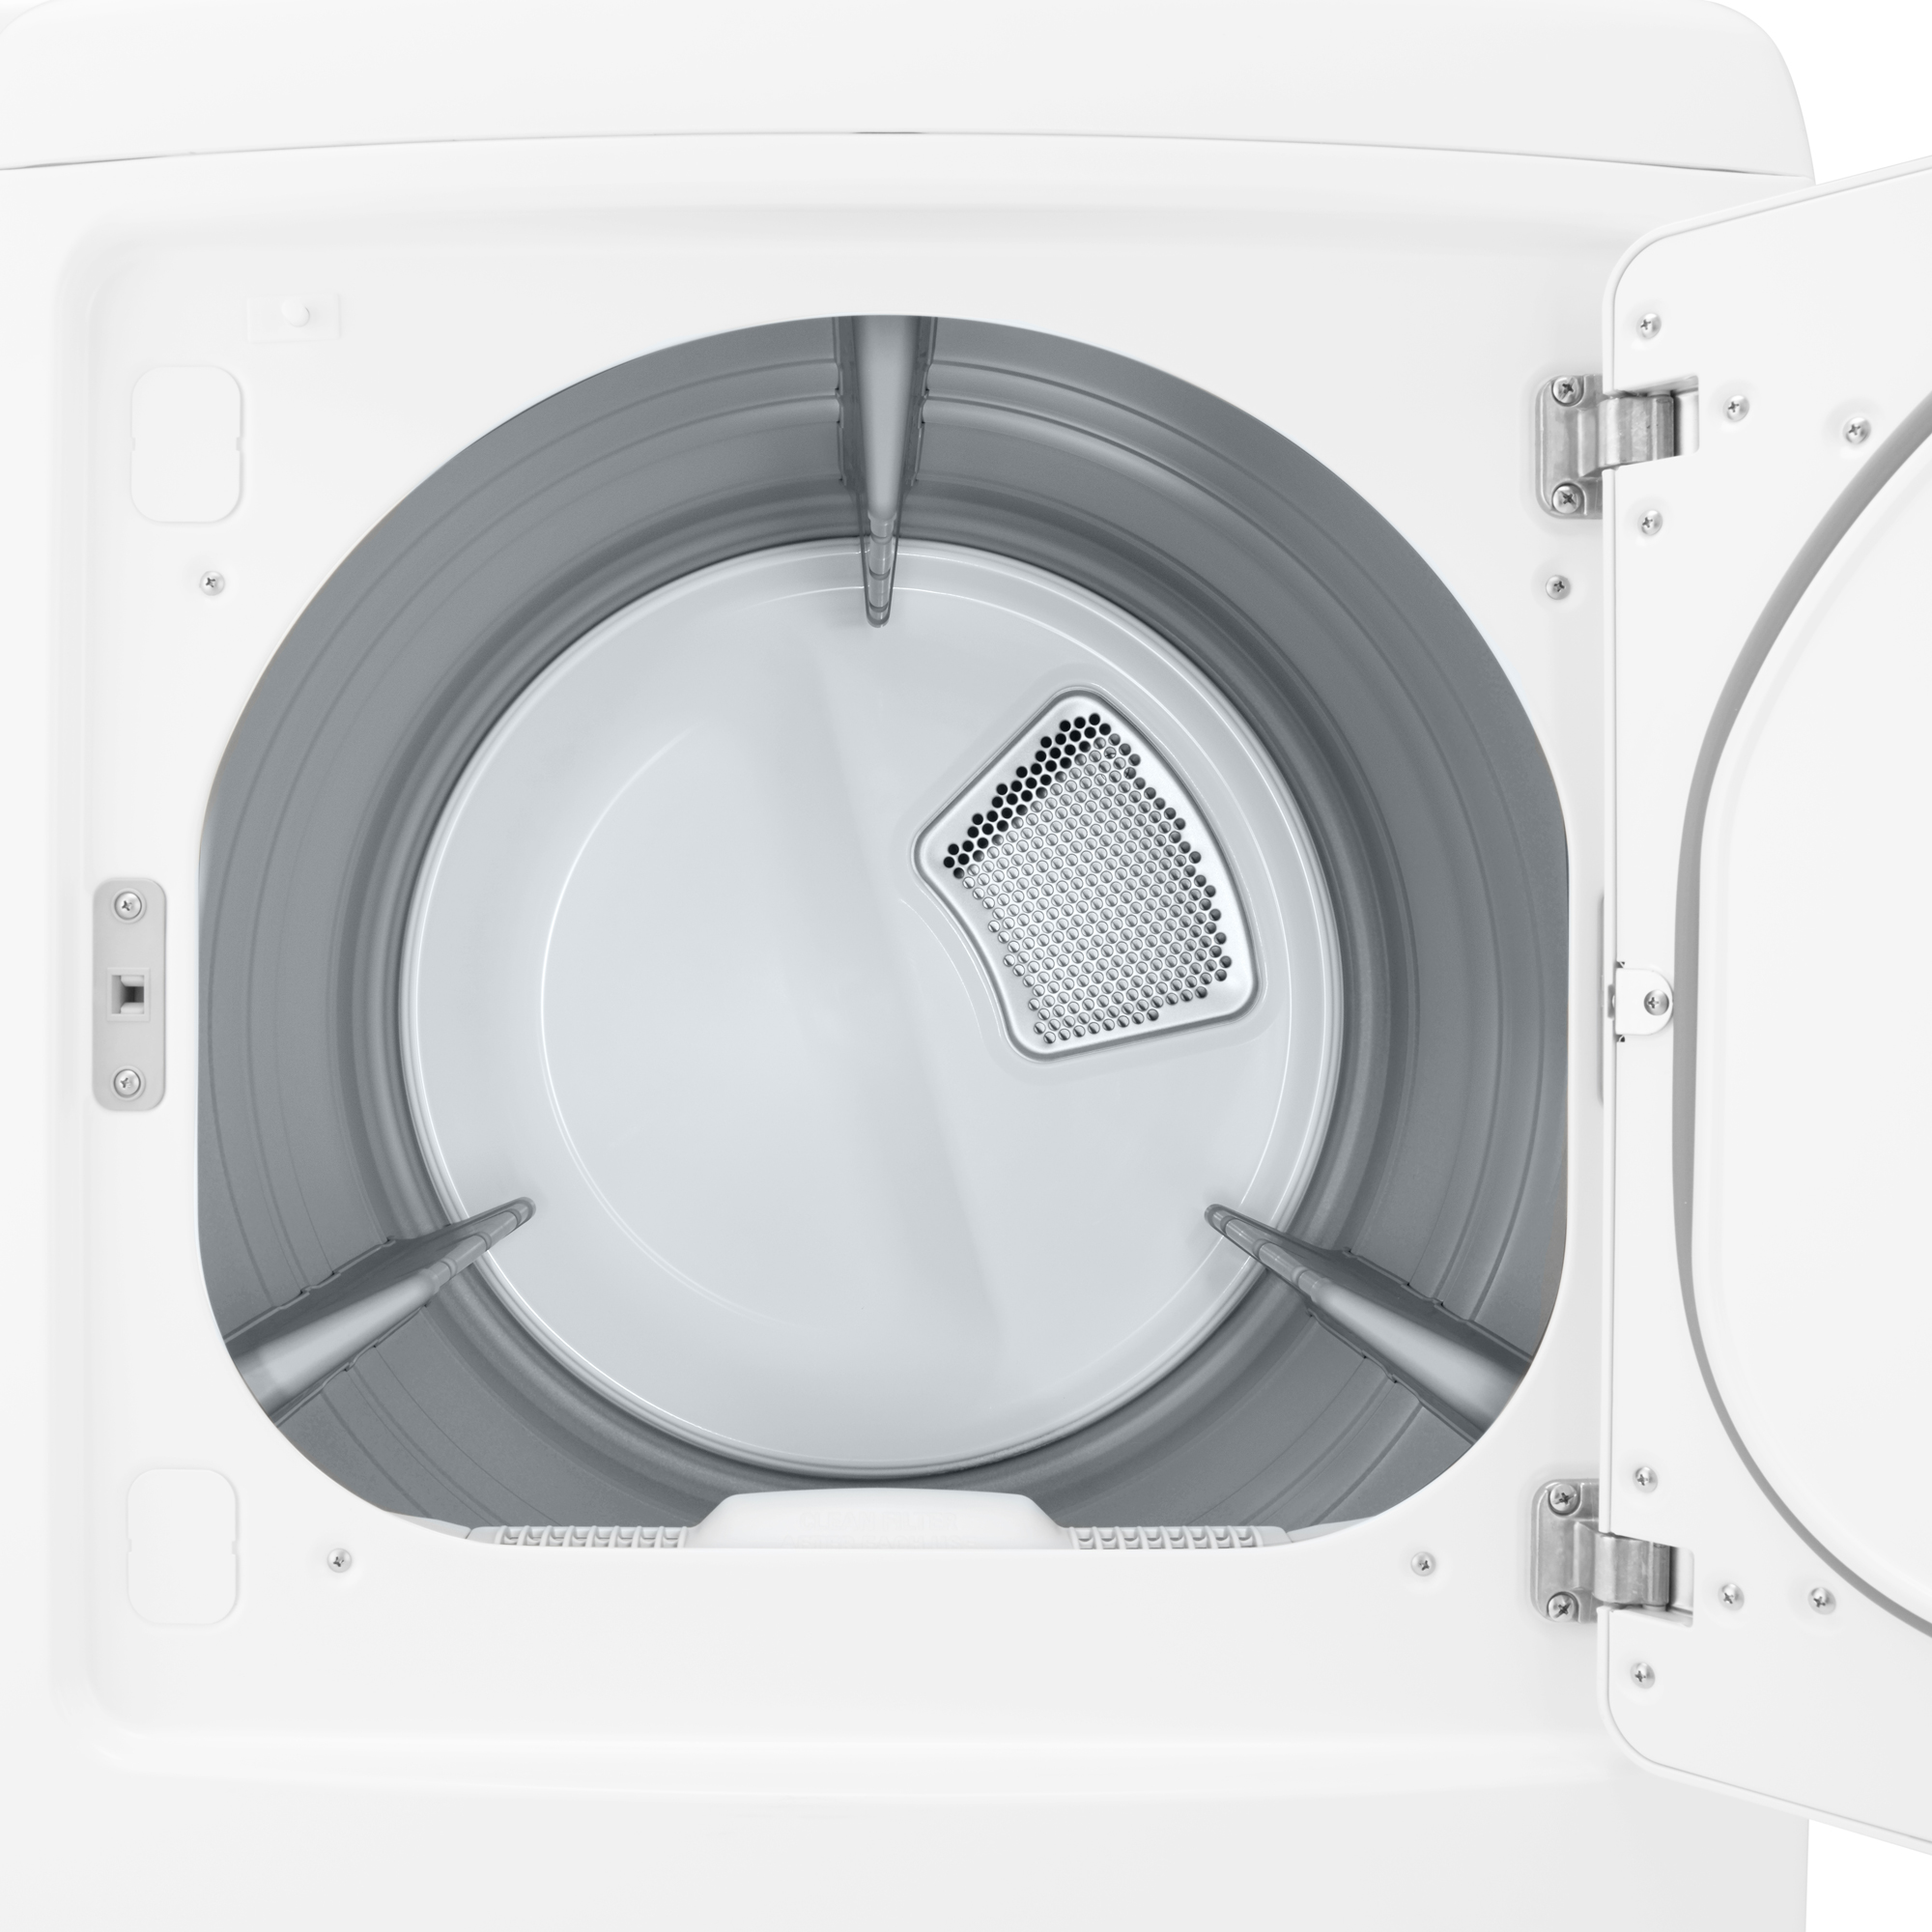 LG DLG1502W 7.3 cu. ft. Large Capacity Front Control Gas Dryer – White